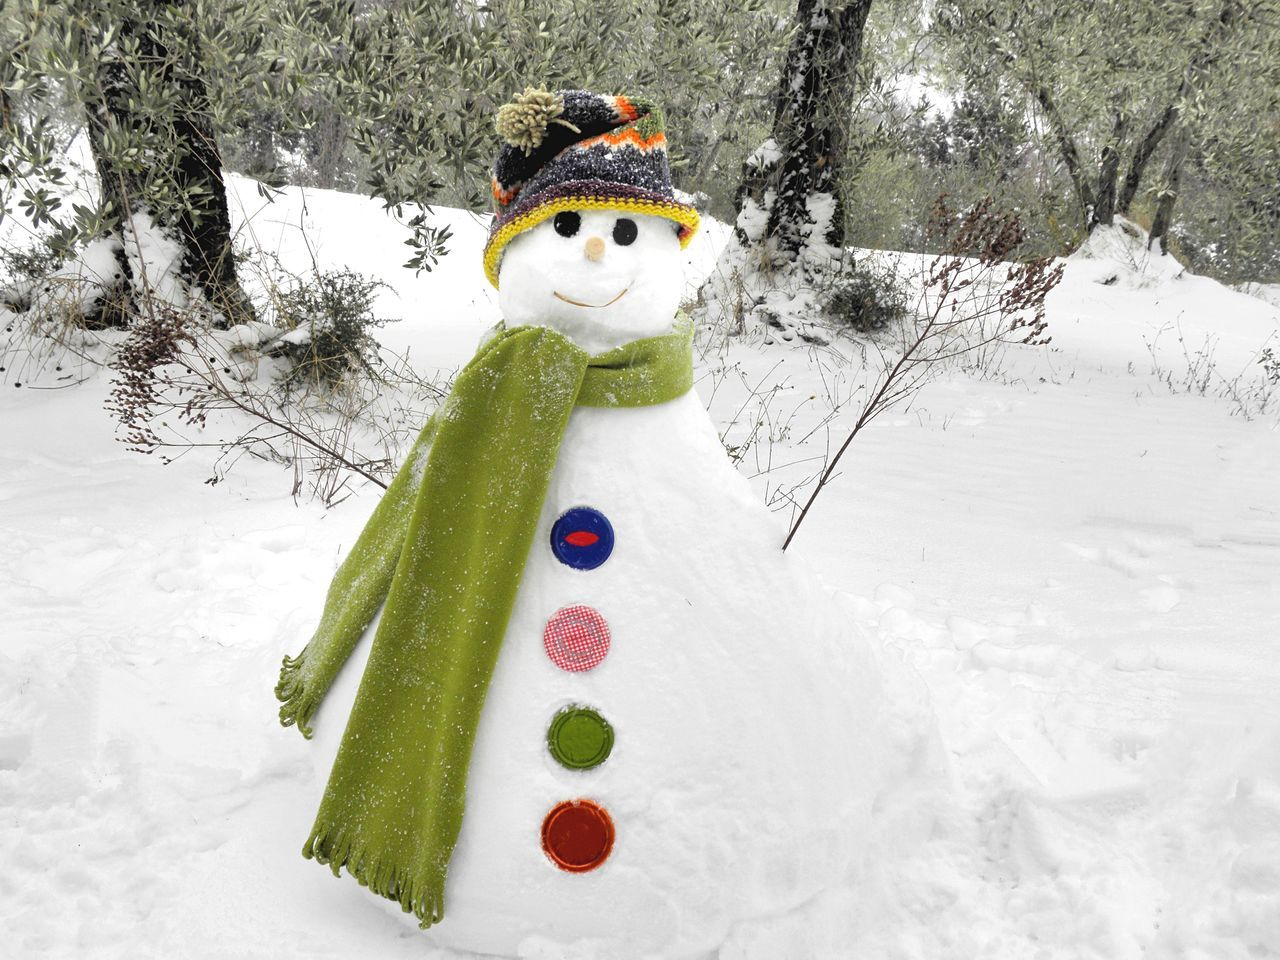 Winter Snow Cold Temperature Snowman White Color Nature No People Childhood Outdoors Tree Day Beauty In Nature Smiling Olive Tree Multi Colored Wool Hat Hat Scarf Green Scarf Open Arms Bottons EyeEmNewHere